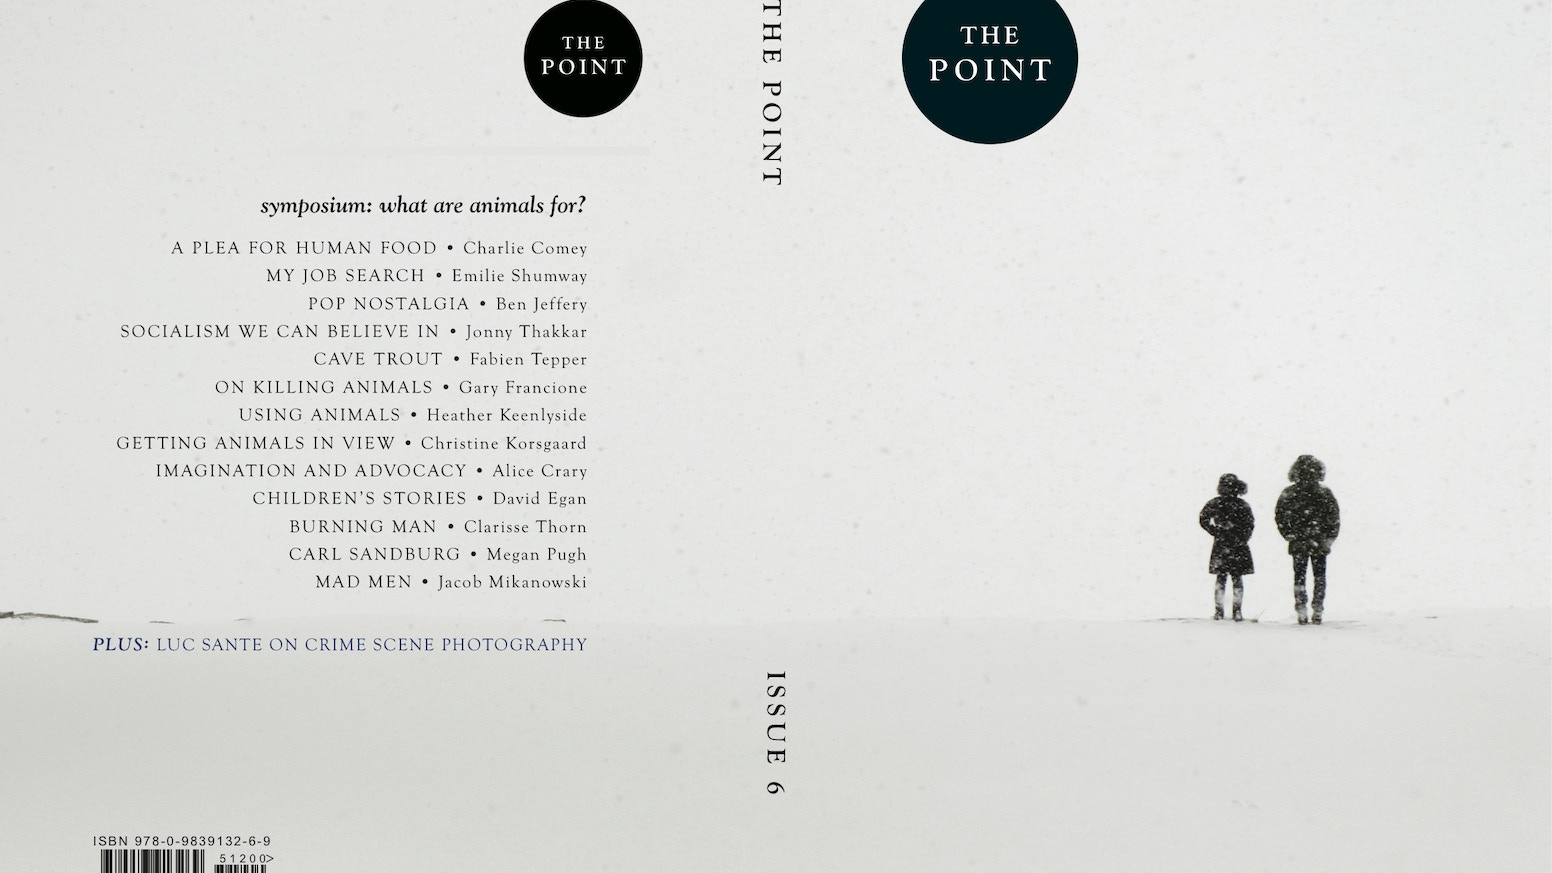 The Point: Issue 7 by The Point magazine — Kickstarter